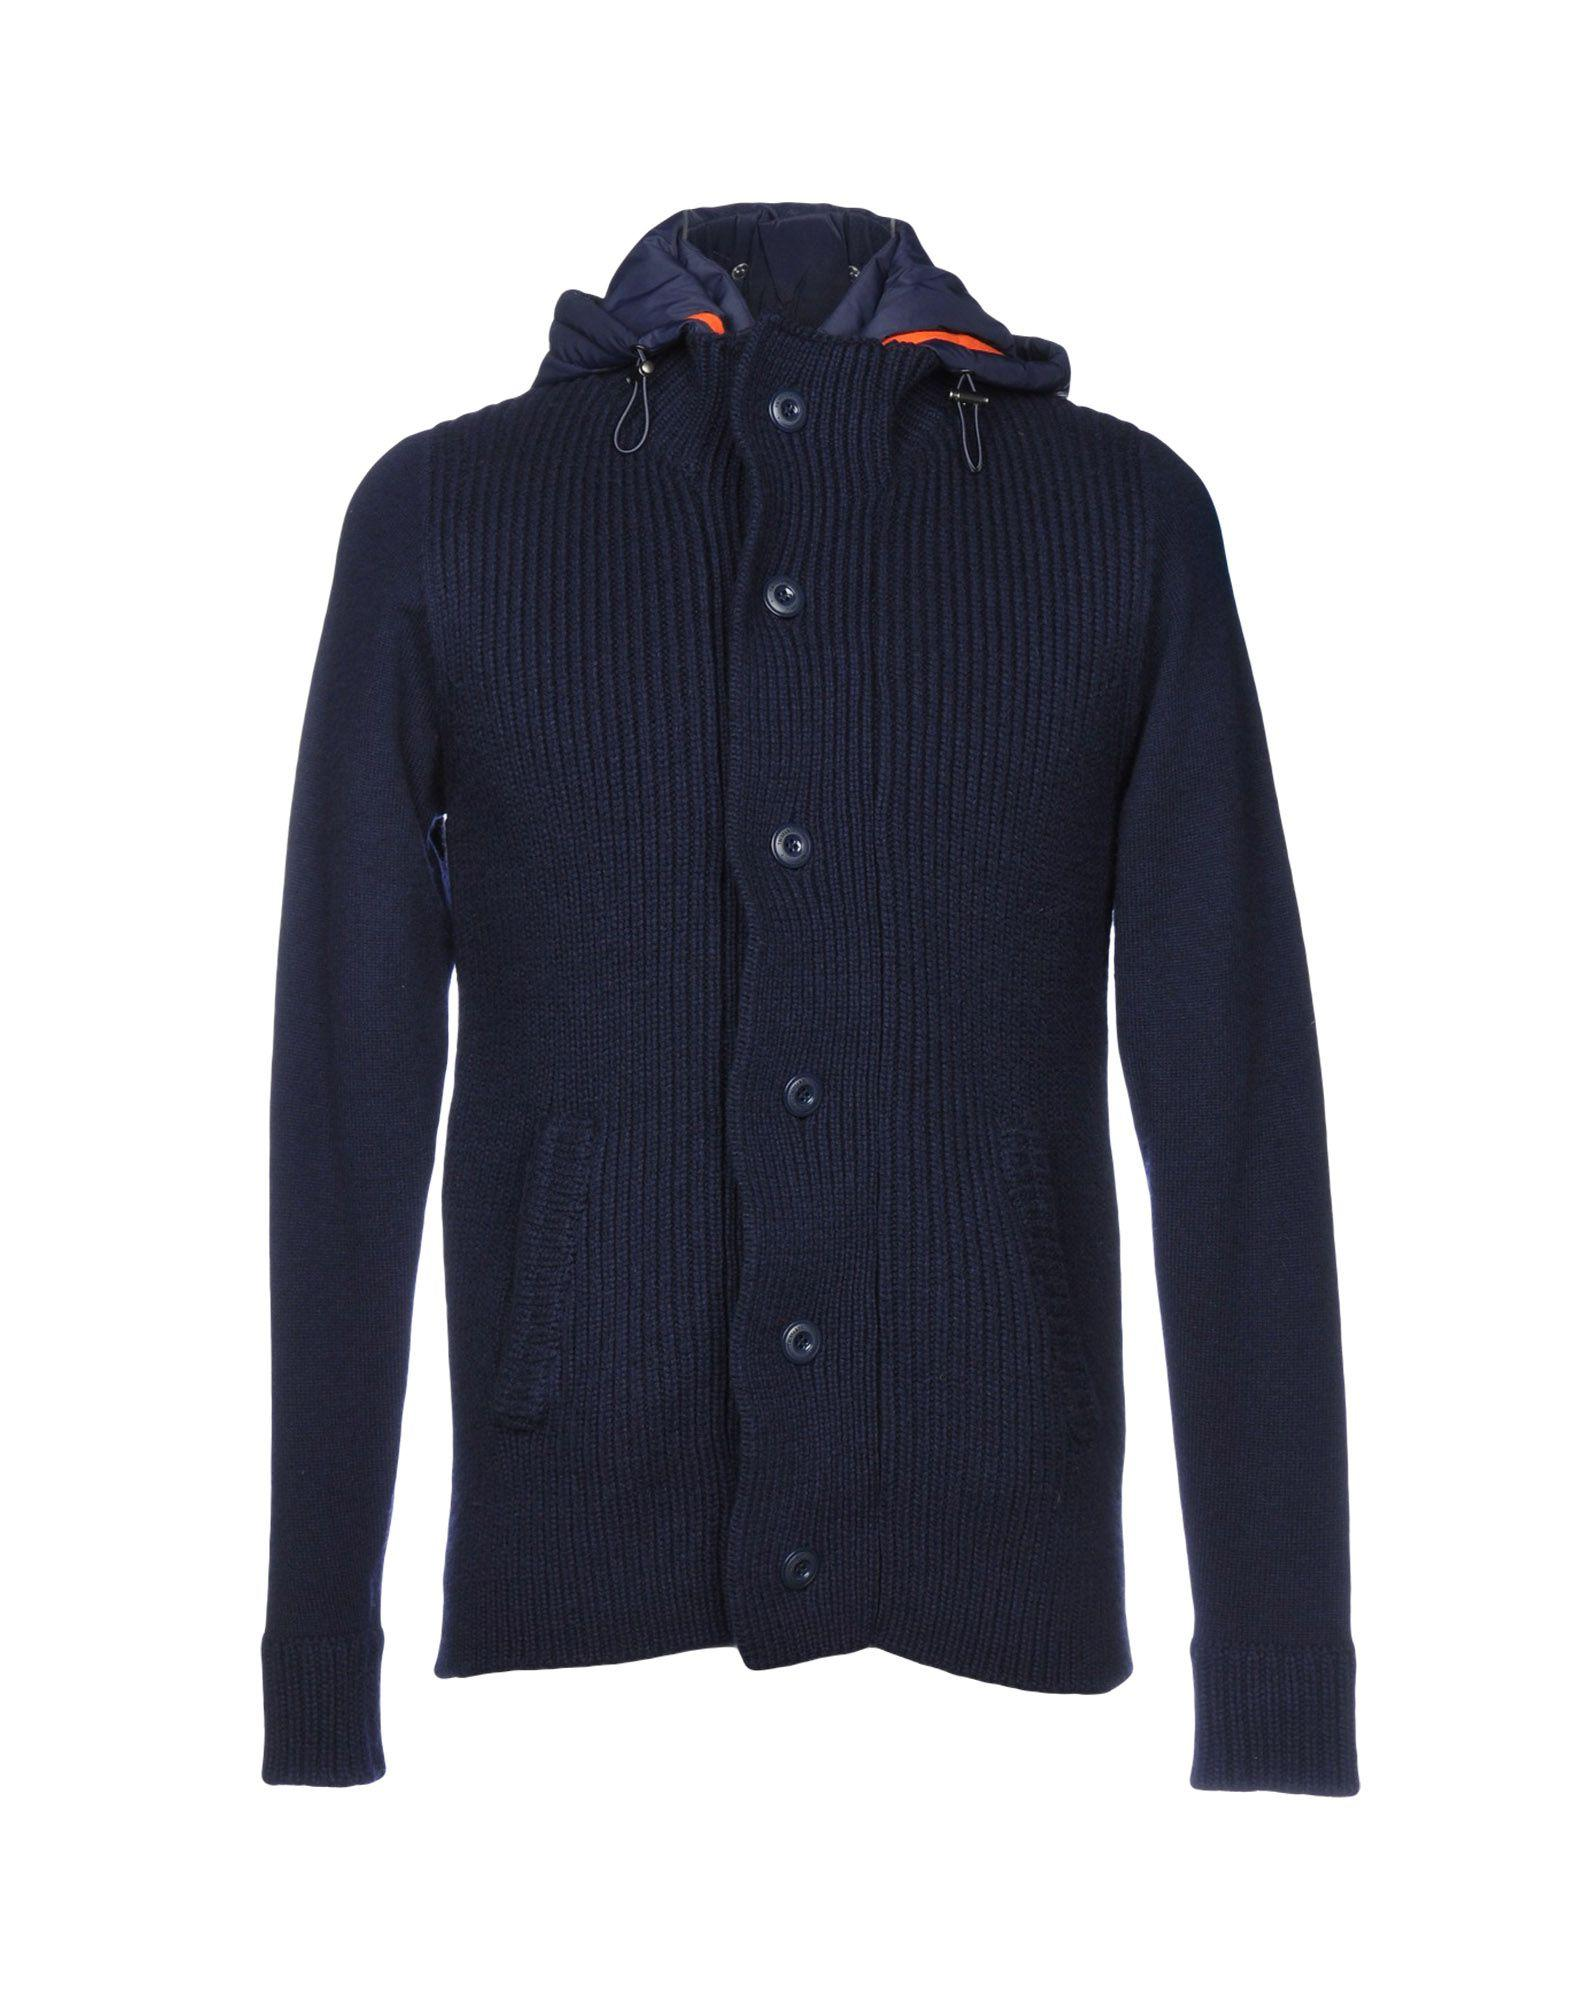 Trussardi Jeans Jacket In Dark Blue